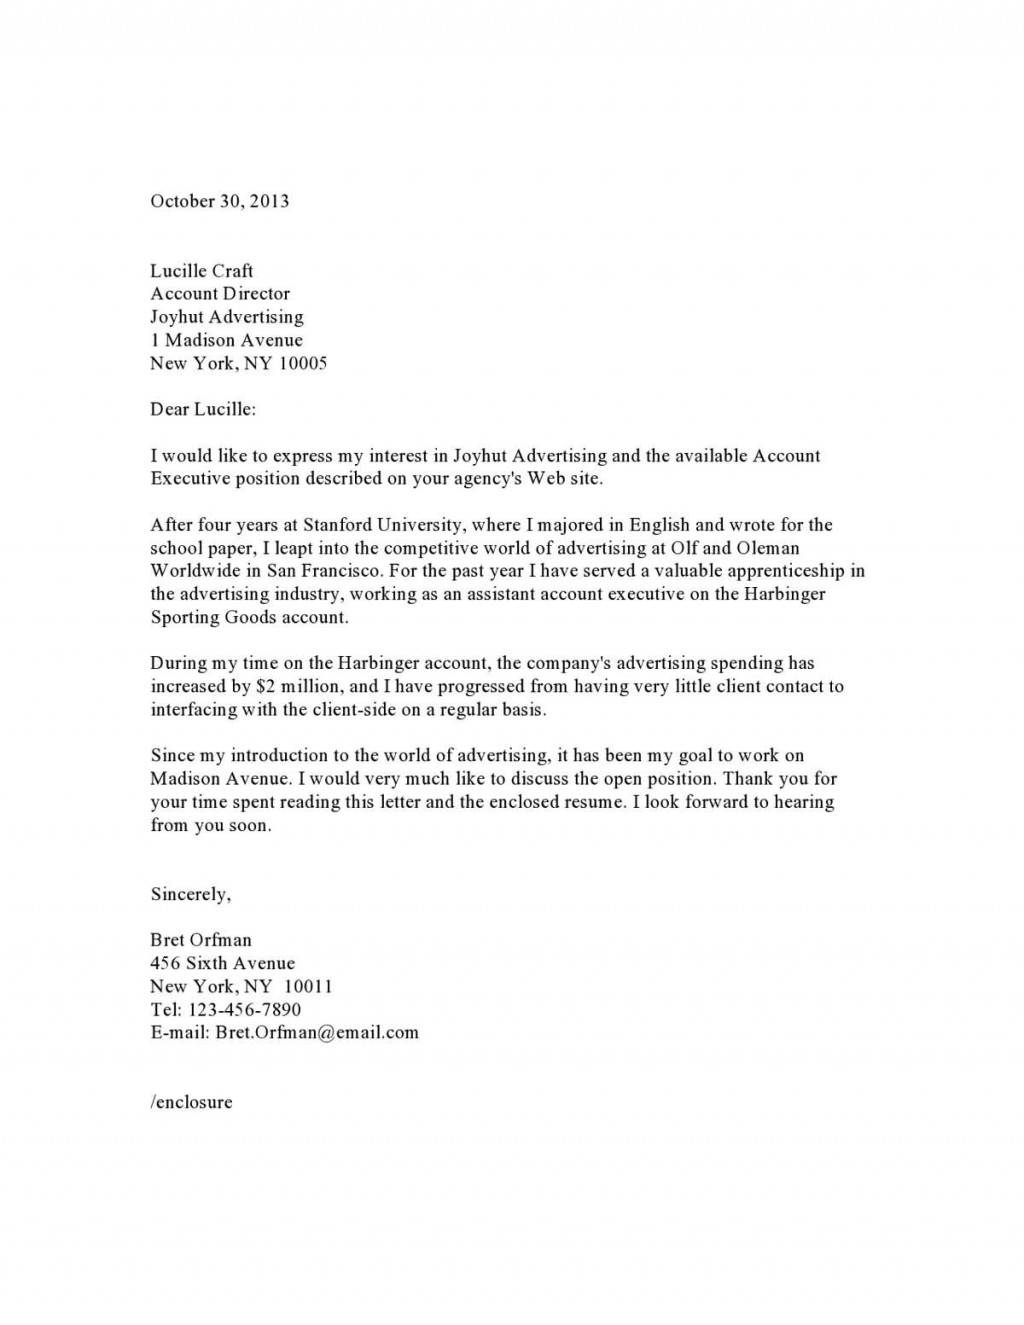 004 Awful Sample Cover Letter Template Picture  For Administrative Assistant Best Job Application CvLarge